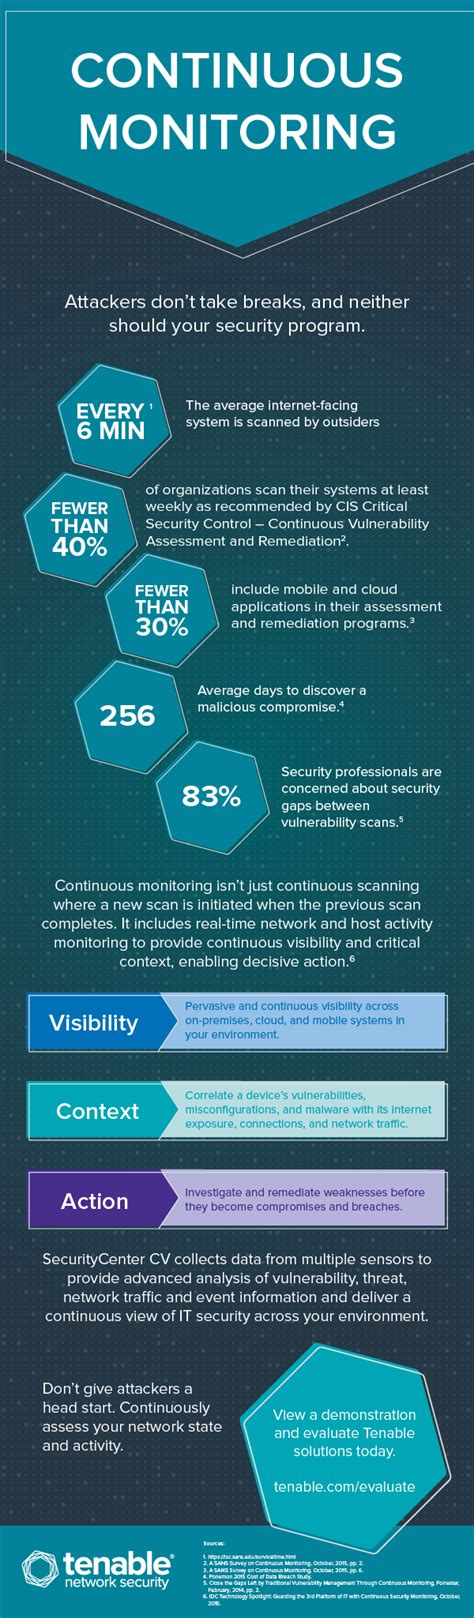 continuous monitoring by the numbers infographic tenable